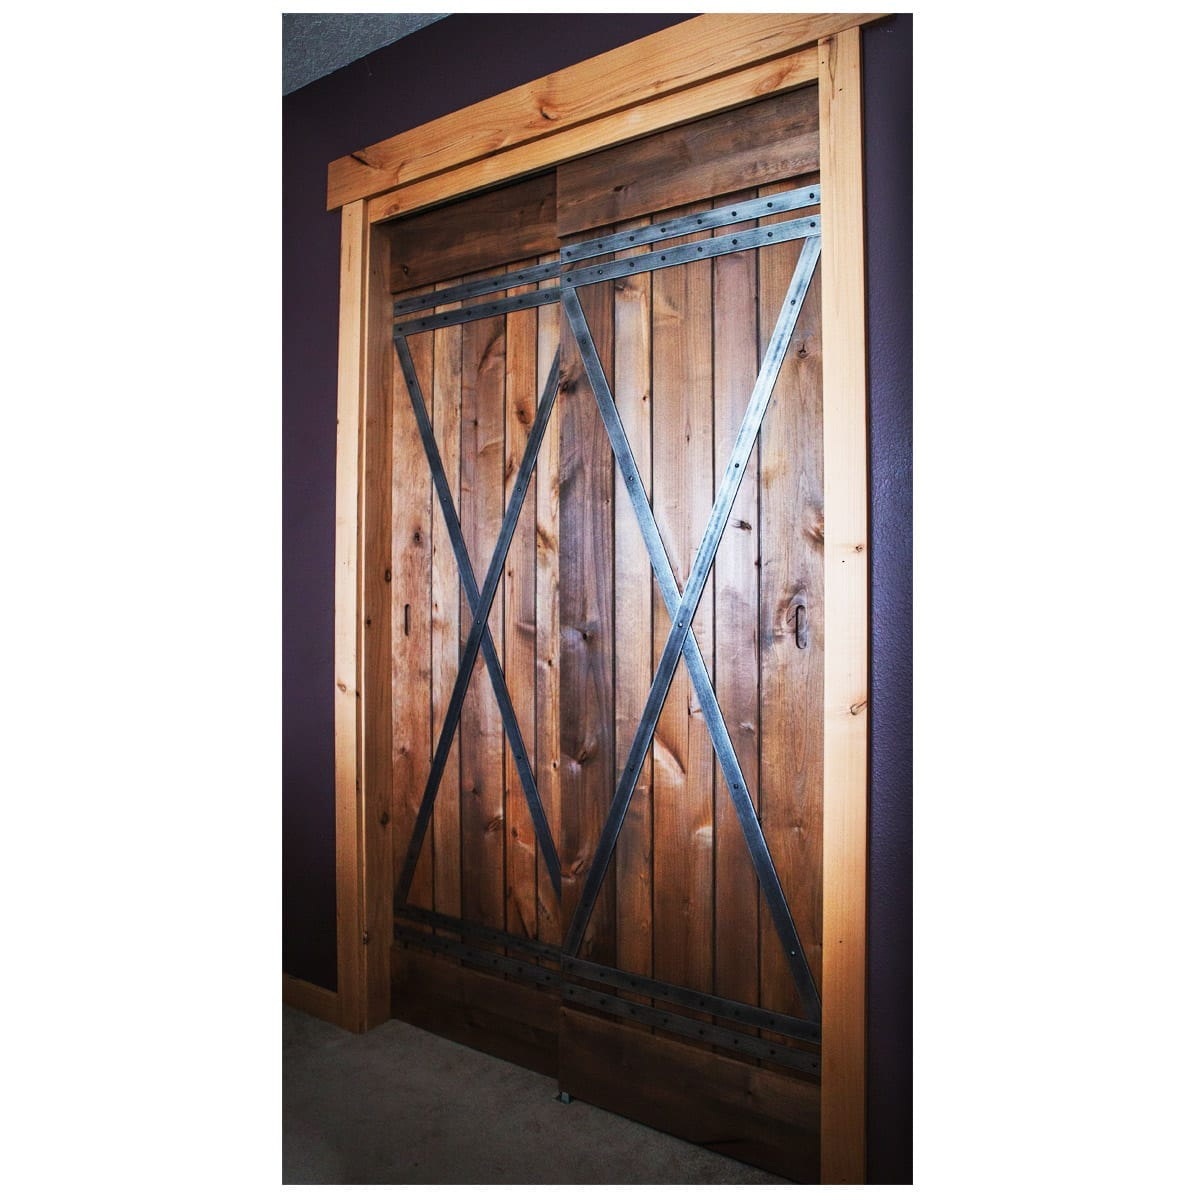 Portland barn door Vedar